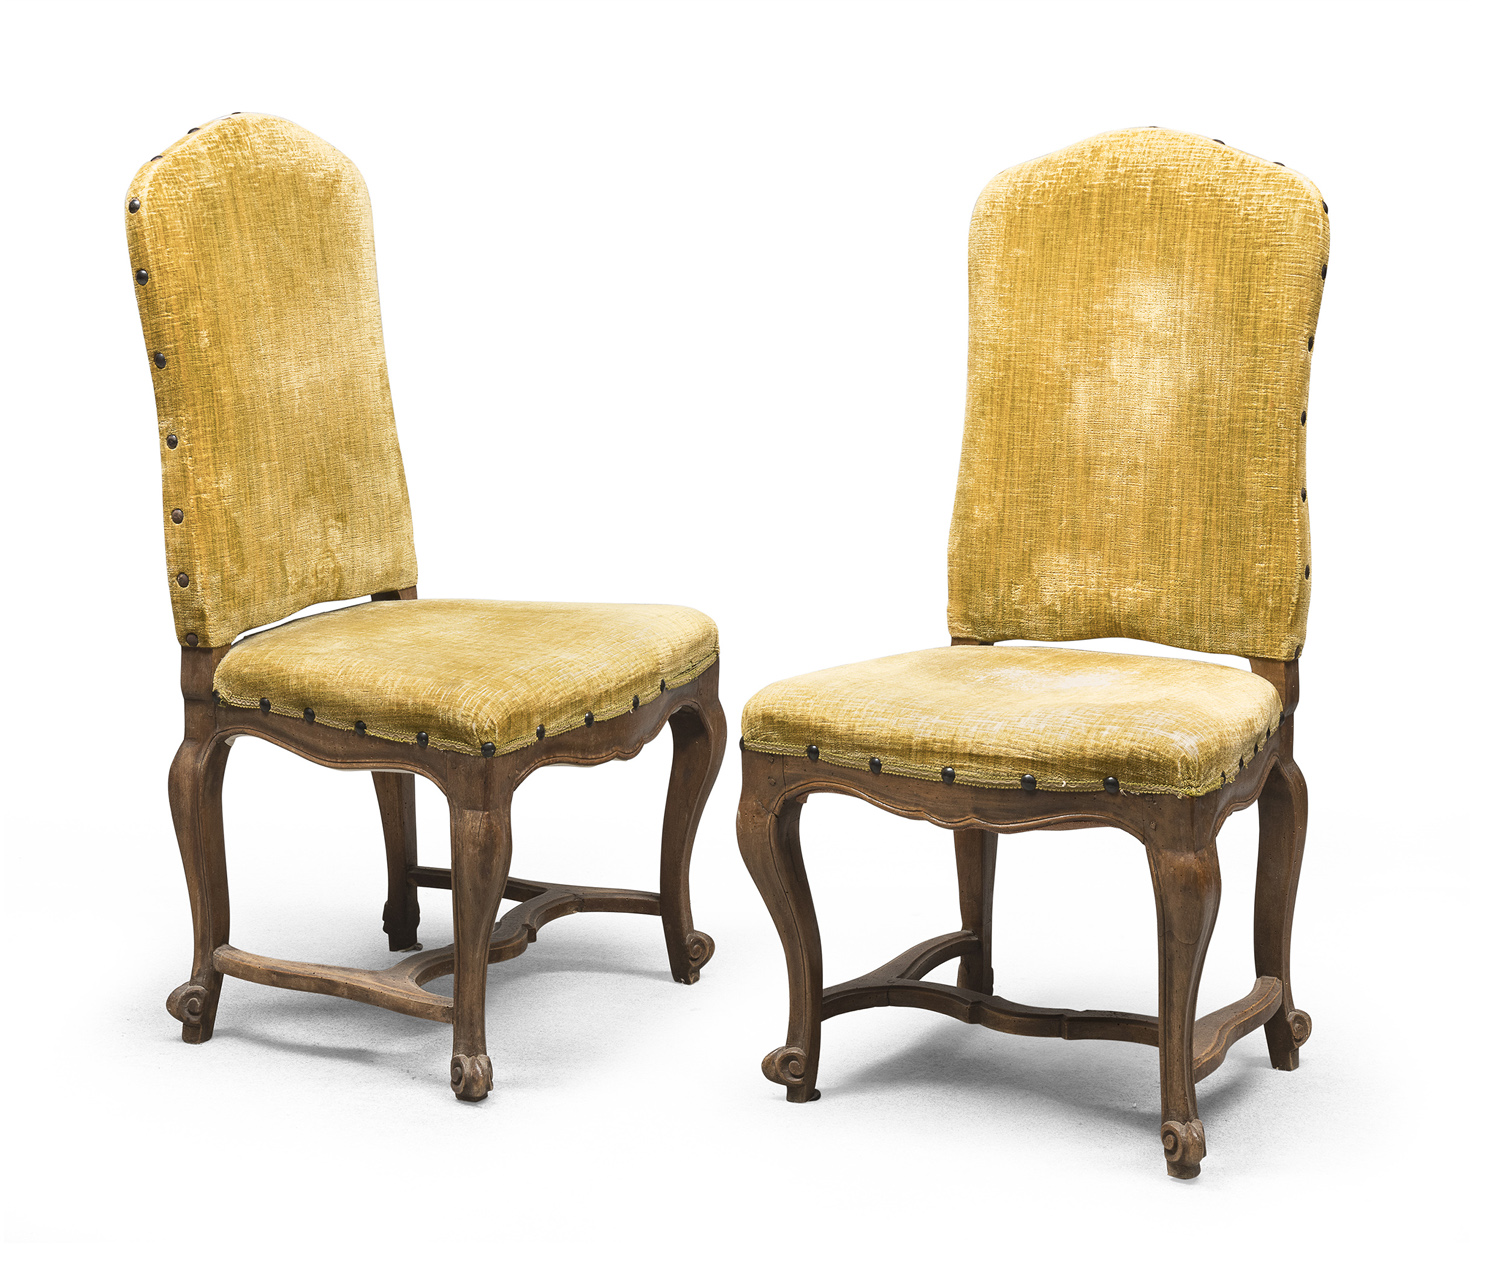 PAIR OF WALNUT CHAIRS NORTHERN ITALY ANTIQUE ELEMENTS